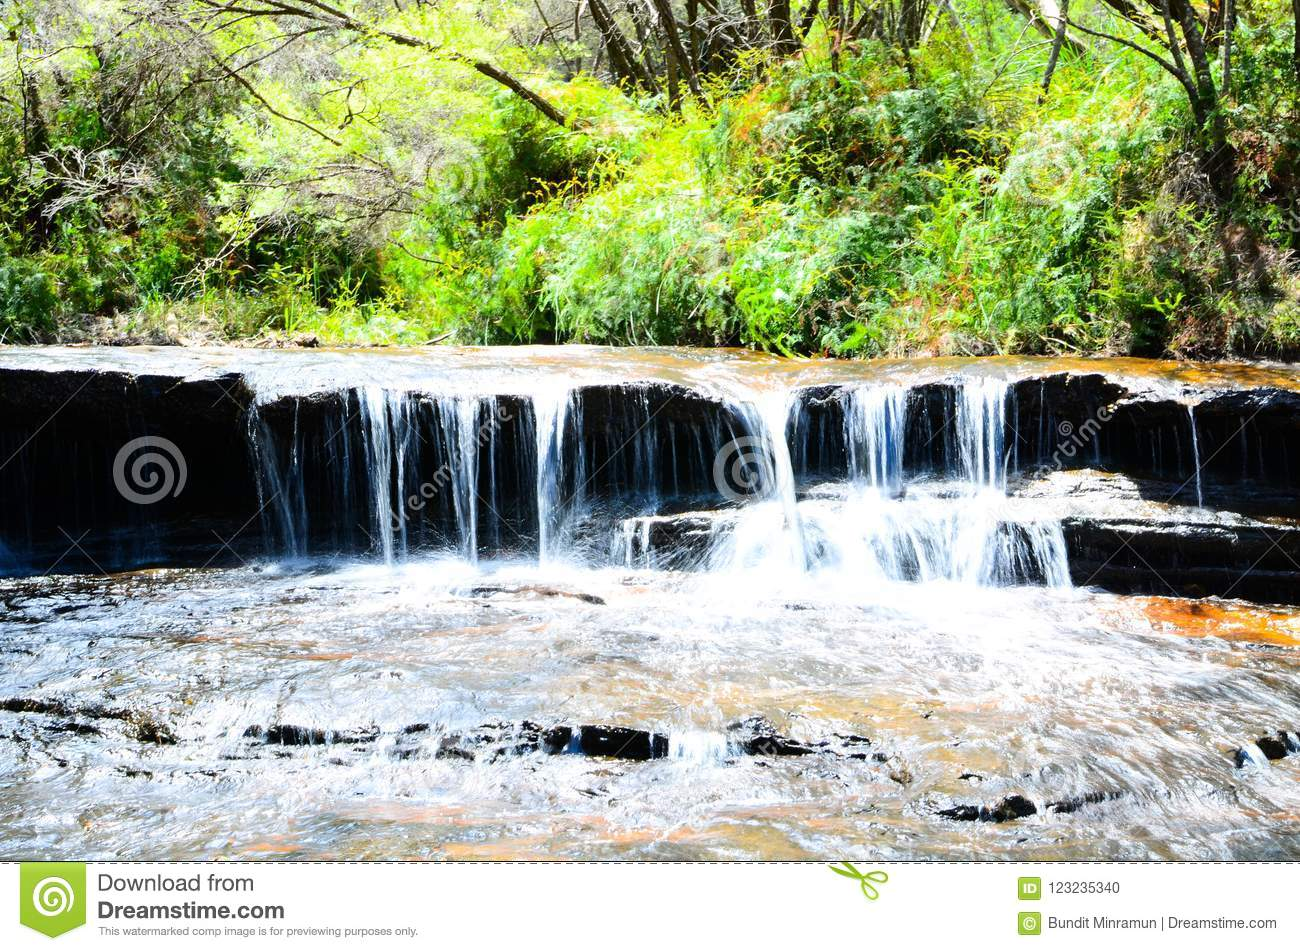 Small waterfall in the rainforest at Wentworth Falls, New South Wales, Australia.